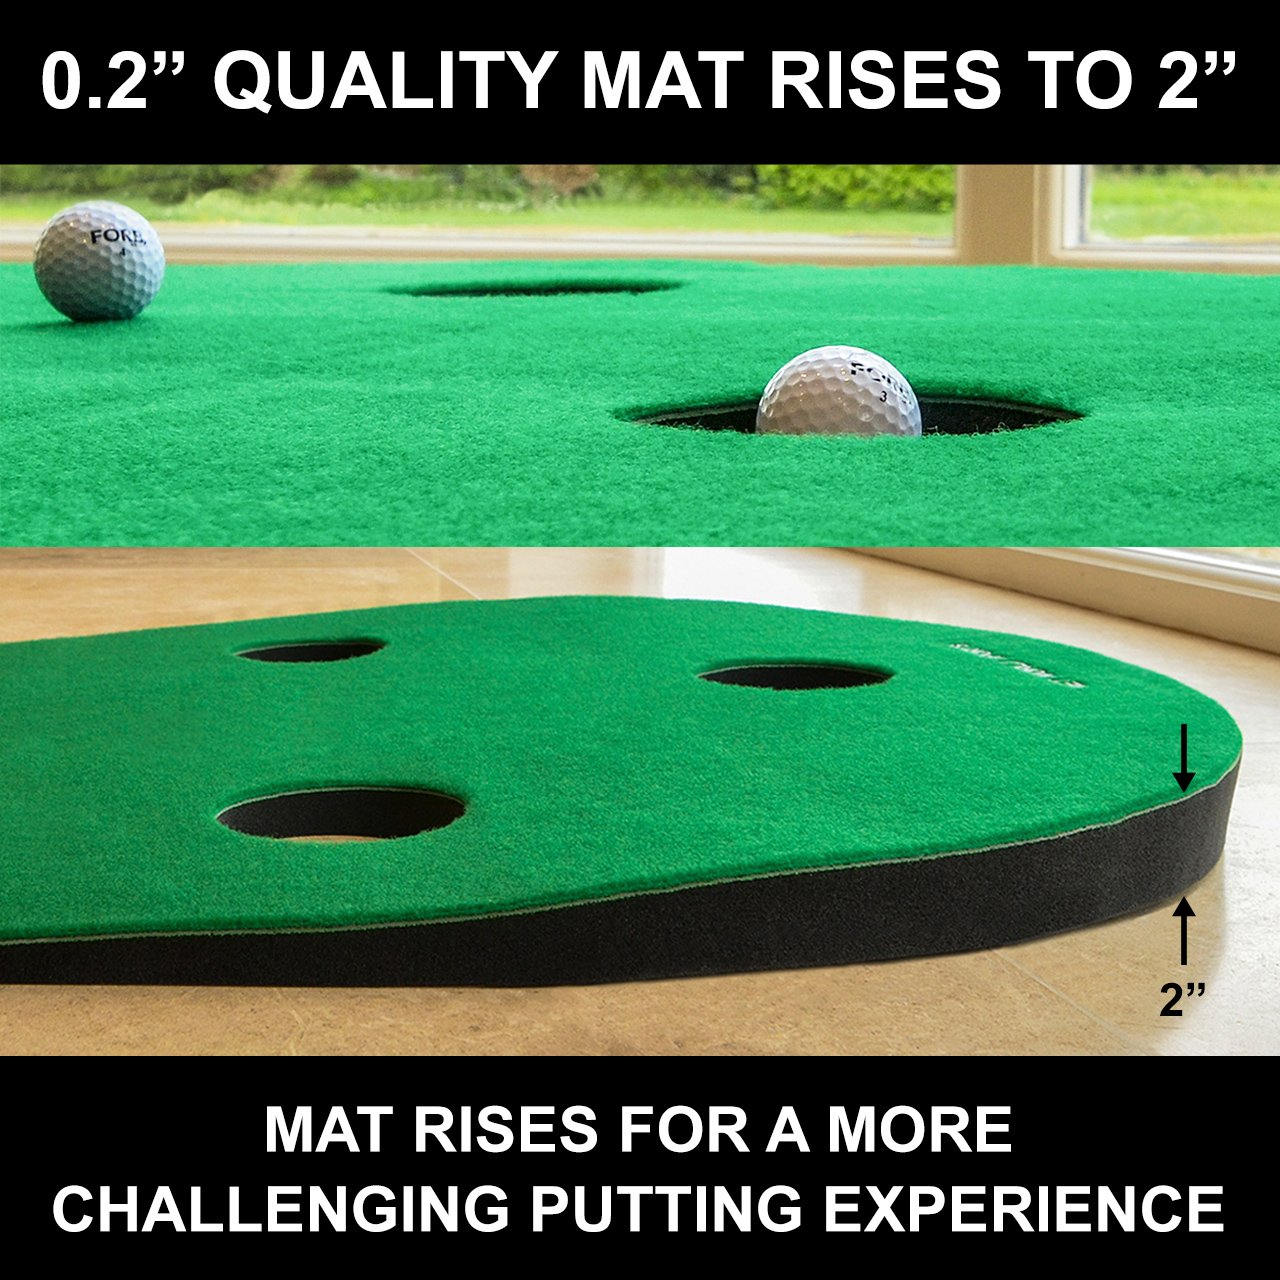 FORB Home Golf Putting Mat 10ft Long - Conquer The Green In Your Own Home! [Net World Sports] by FORB (Image #4)